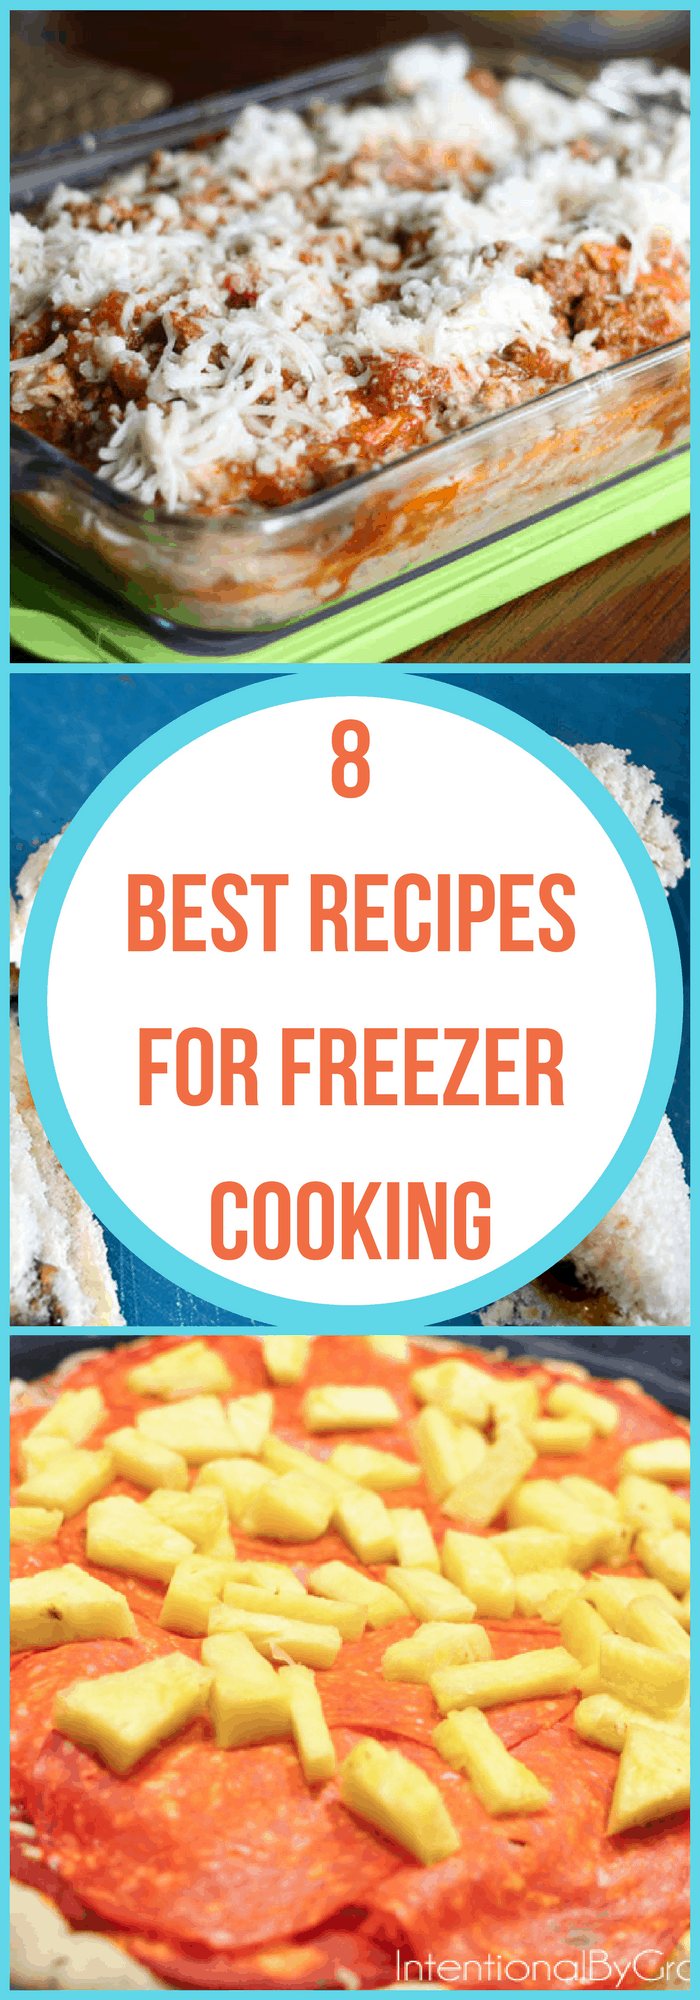 Cooking-8 Best Recipes for Freezer Cooking-The Organized Mom